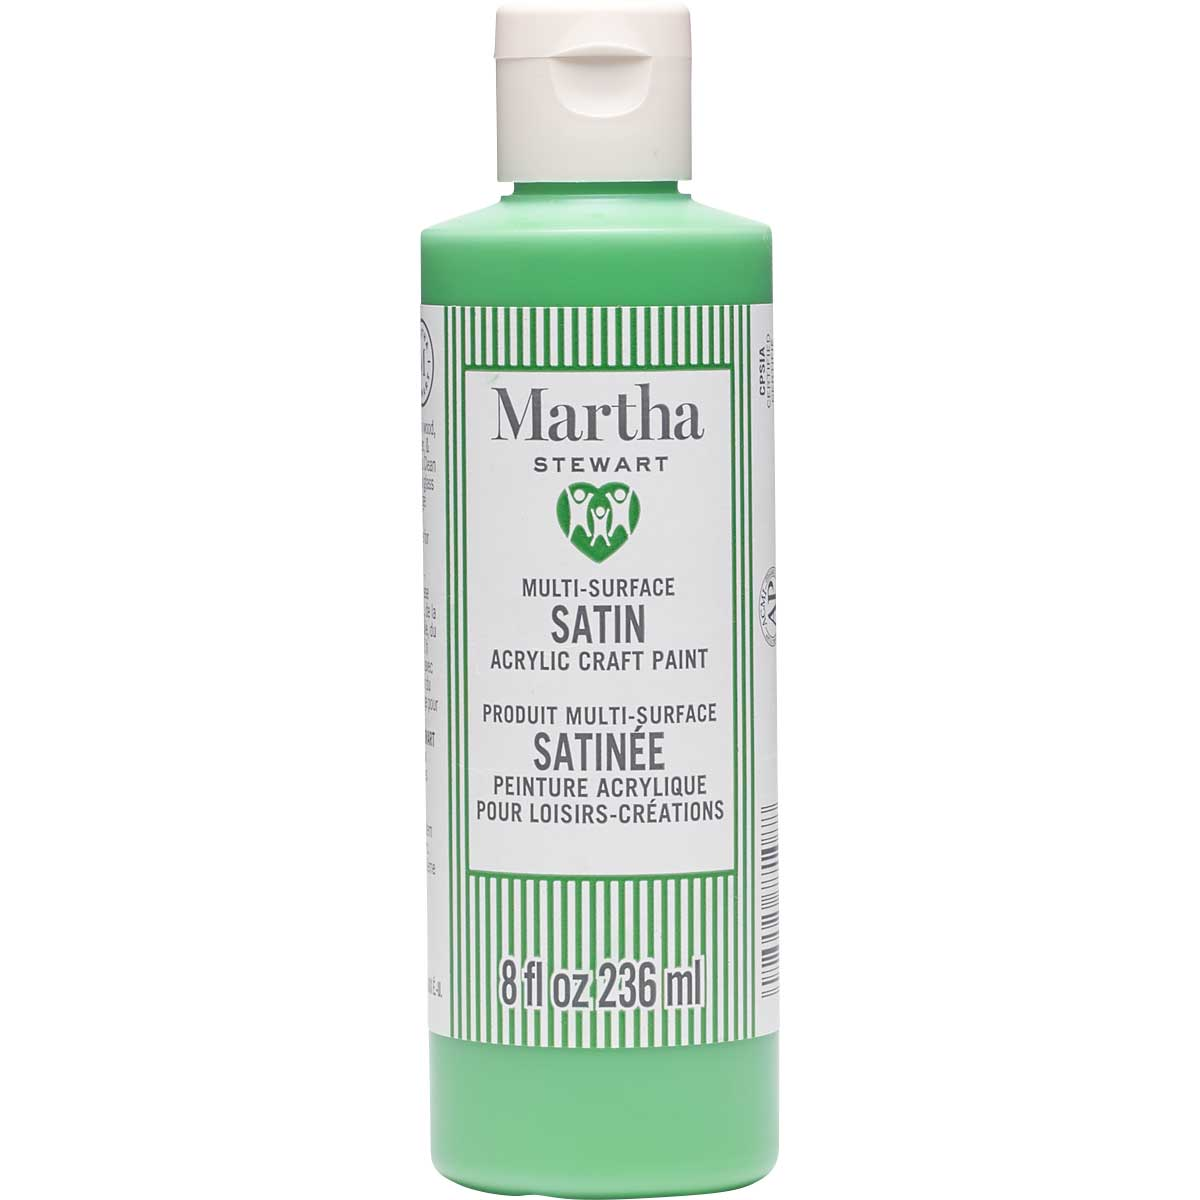 Martha Stewart ® Multi-Surface Satin Acrylic Craft Paint CPSIA - Swing Set Green, 8 oz. - 77108